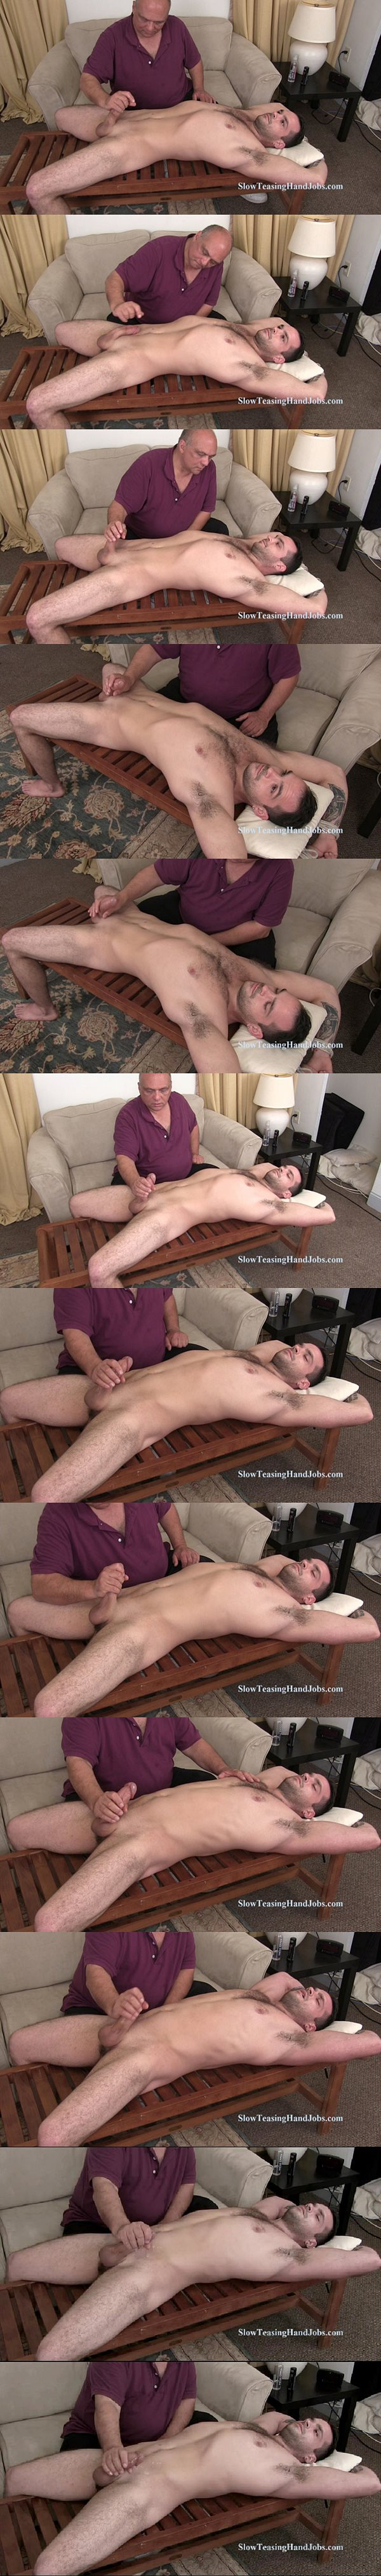 Hot straight macho hunk James tied up and slowly edged at Slowteasinghandjobs 02